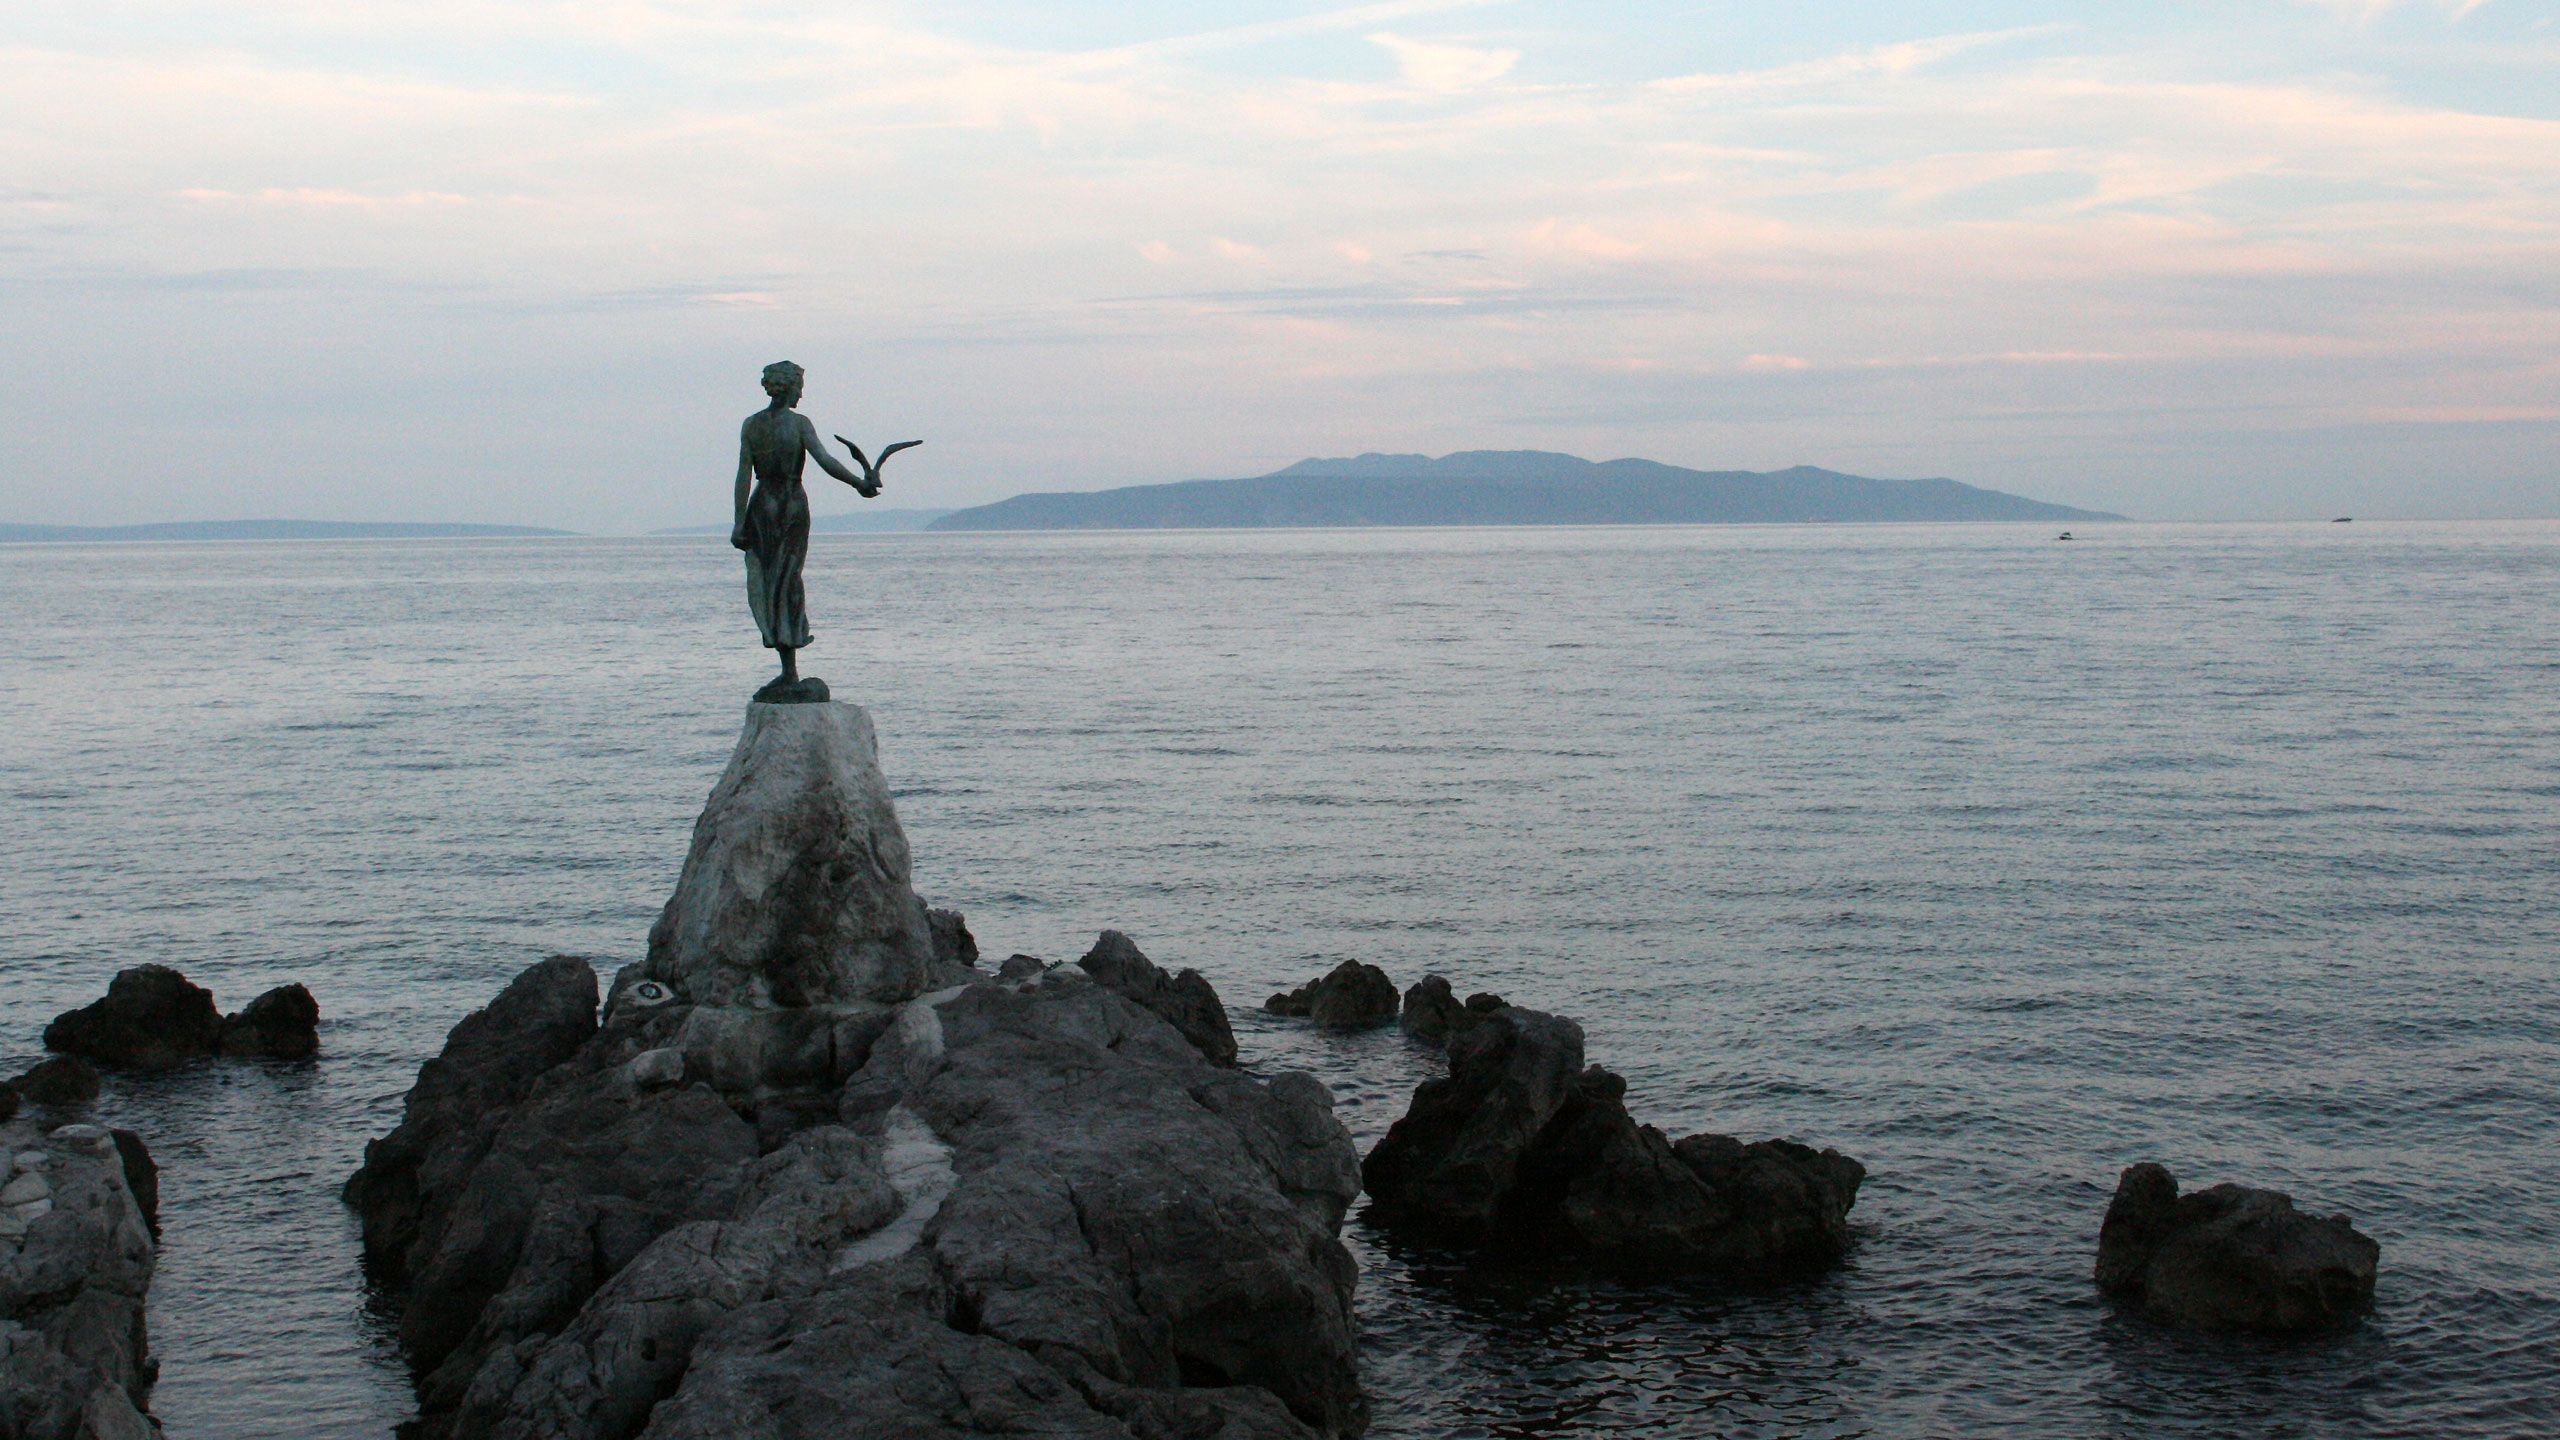 Chorwacja – I was in Opatija too